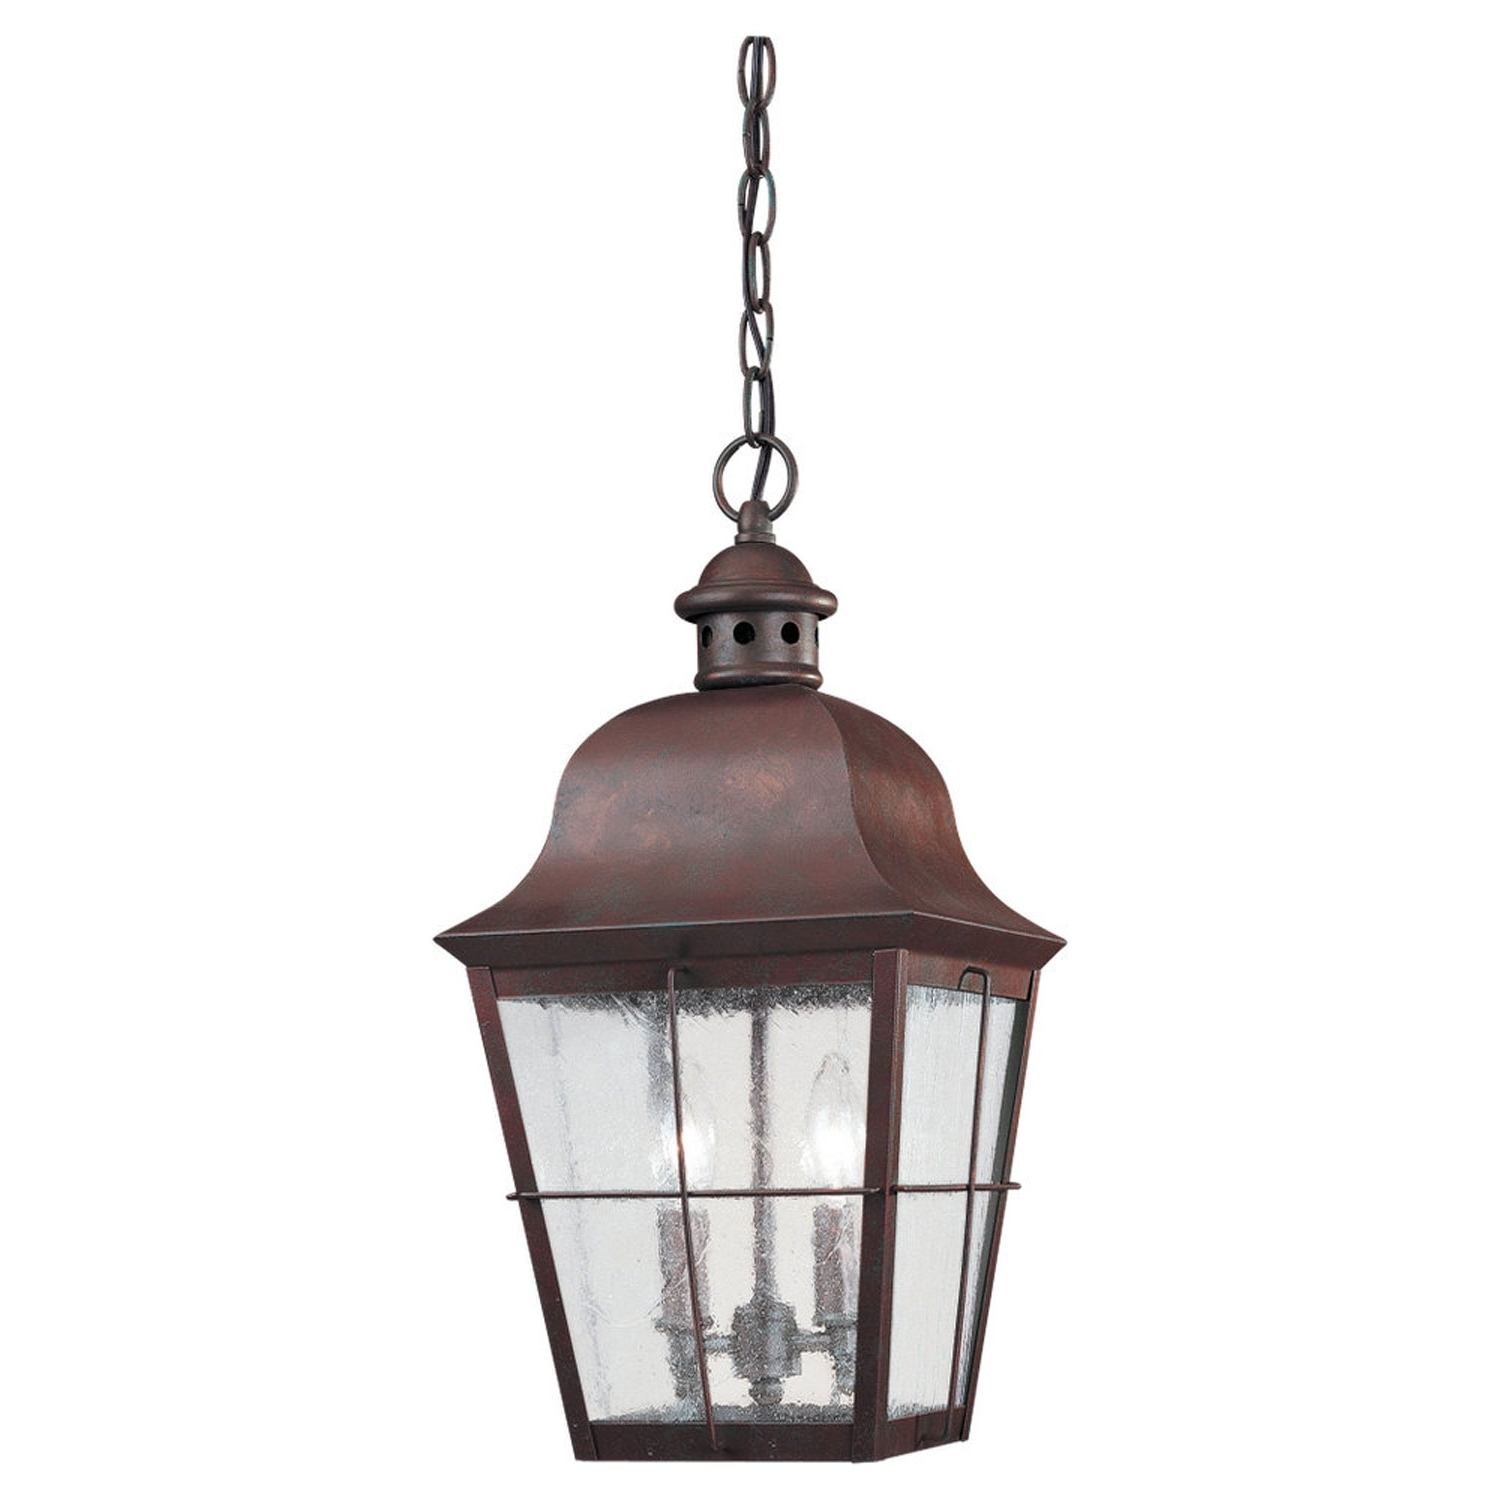 Bellacor Regarding Famous Outdoor Hanging Lanterns With Stand (View 13 of 20)